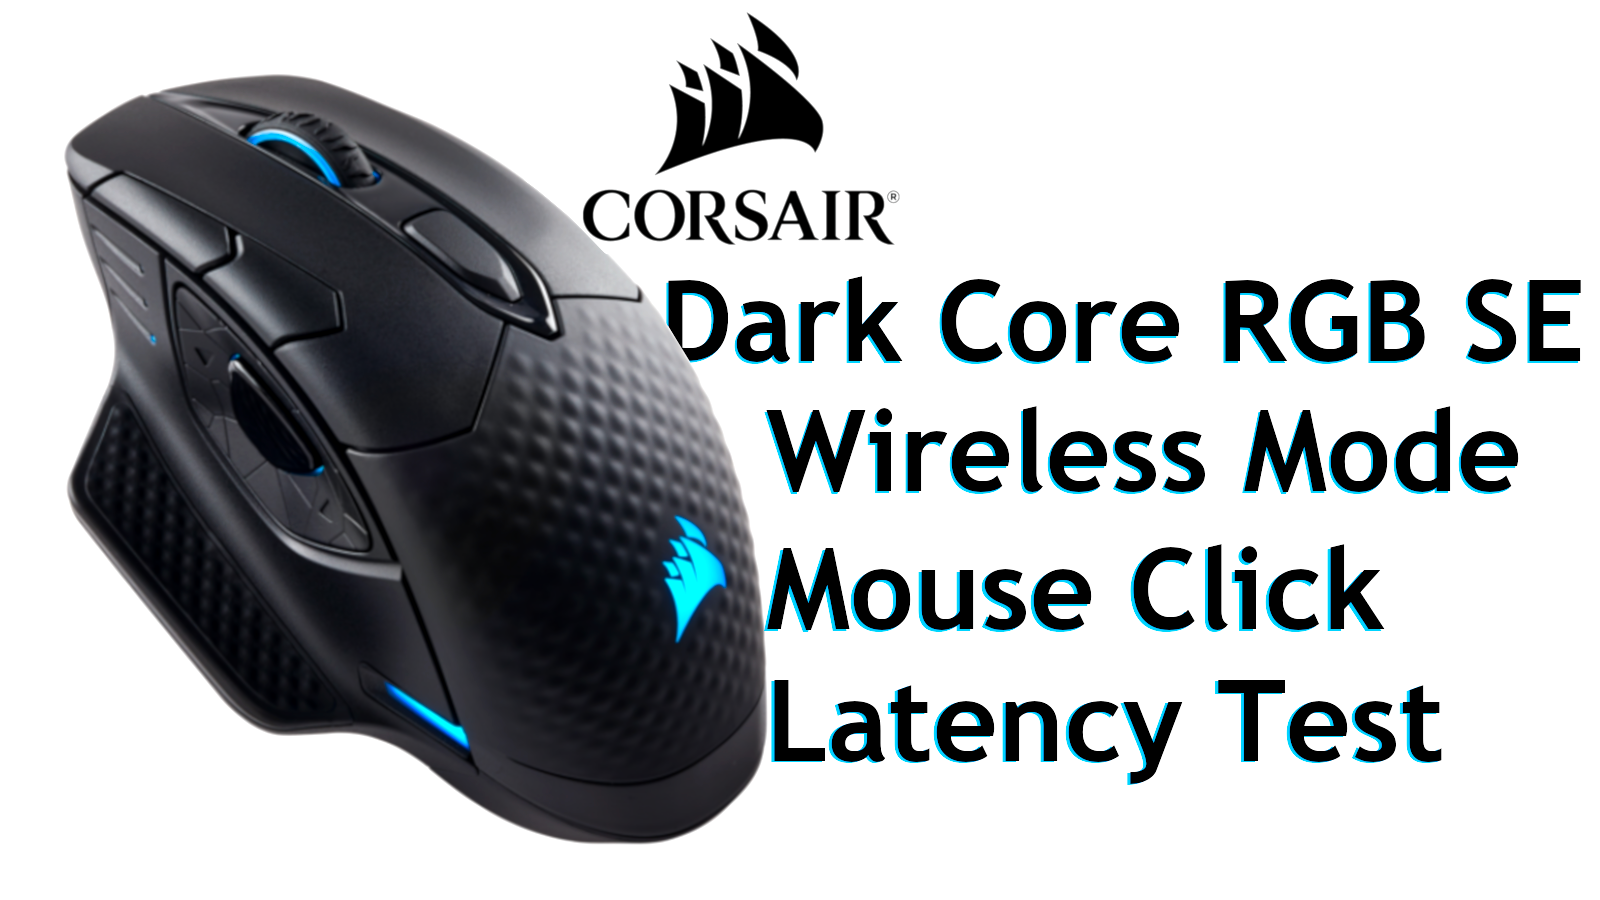 Corsair Dark Core RGB SE Wireless Gaming Mouse Lag (Latency